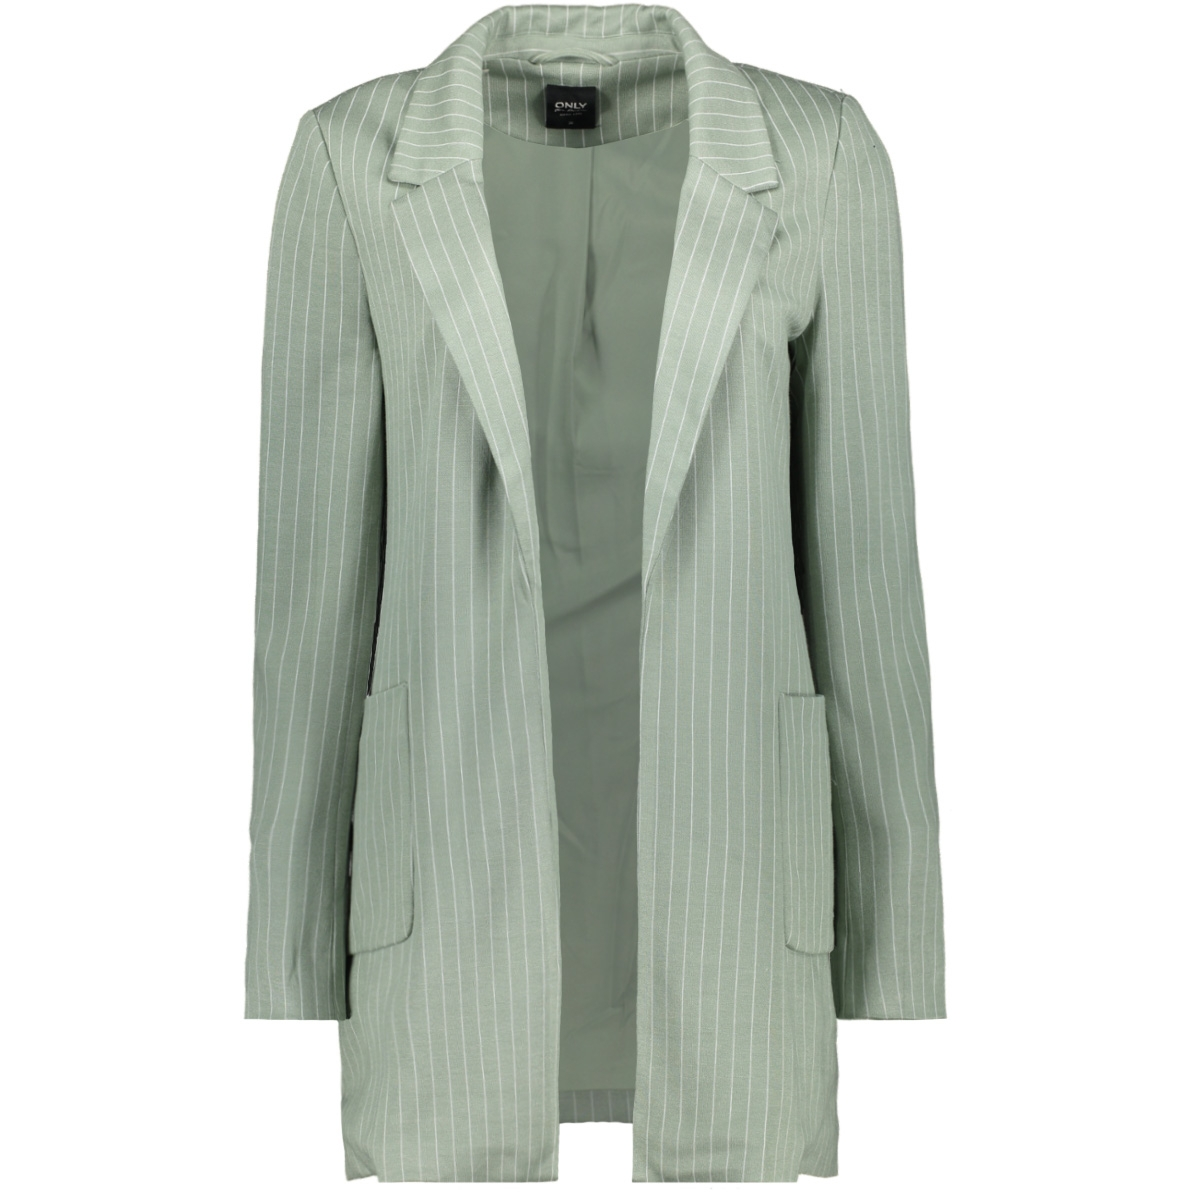 onlbaker-aubree l/s stripe coatigan 15197095 only blazer iceberg green mel/cloud dancer